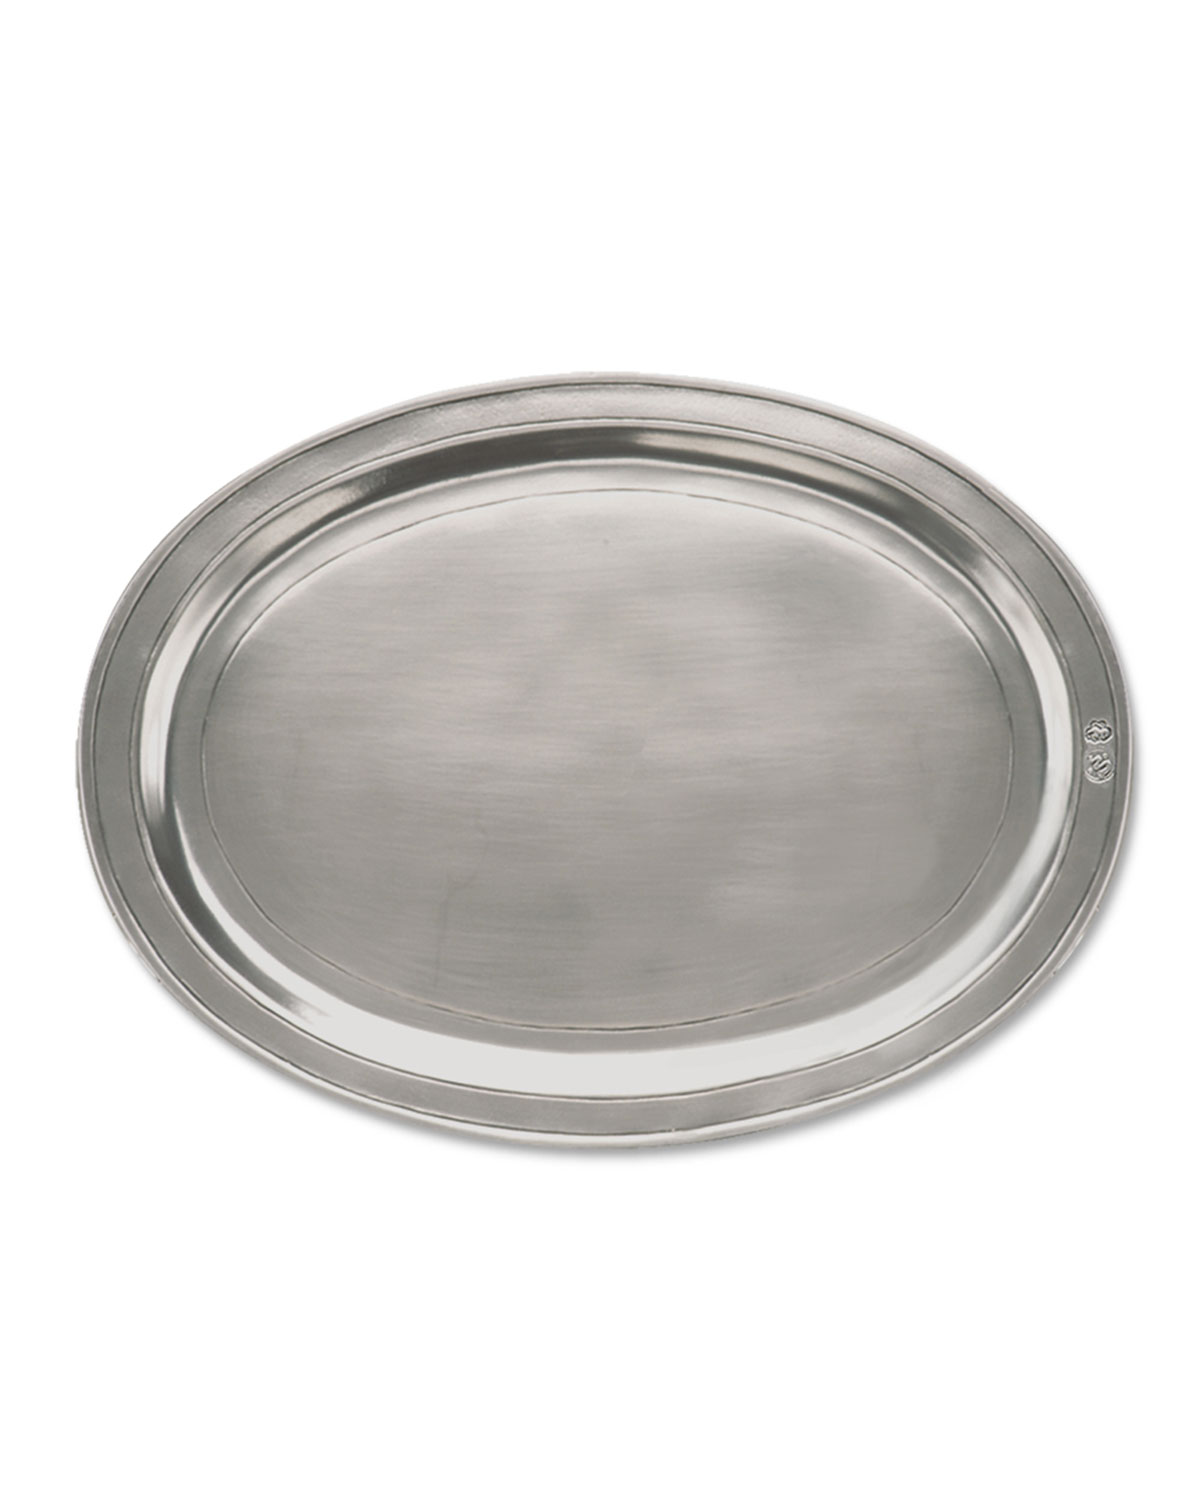 Match Clothing MEDIUM OVAL INCISED TRAY